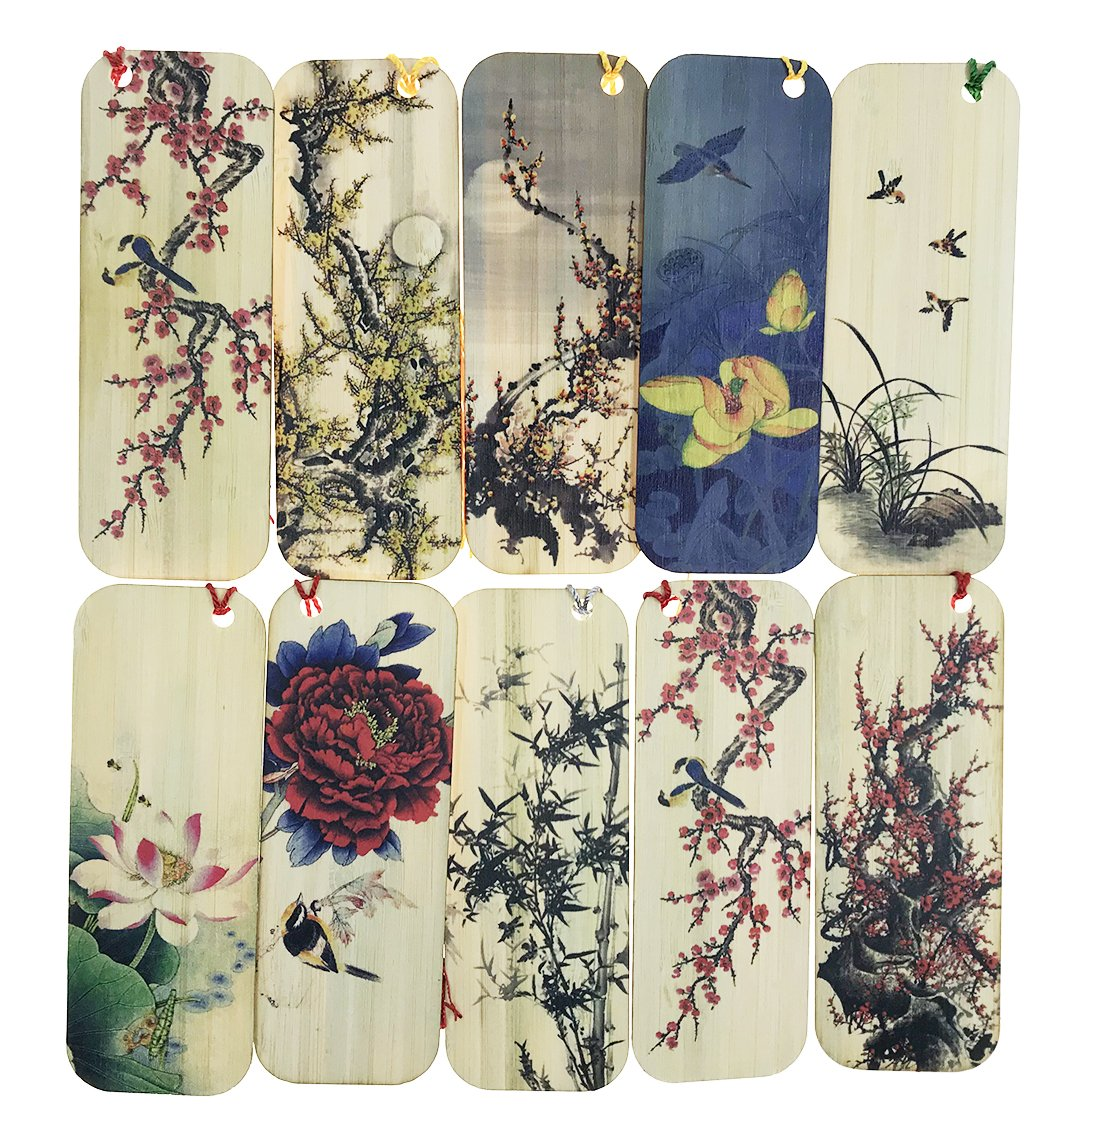 10 PCS Flower and Bird Themed Bamboo Chinese Style Bookmarks for Kids School Study Decoration Souvenirs Business Christmas Birthday GIF by Alrsodl (Image #1)